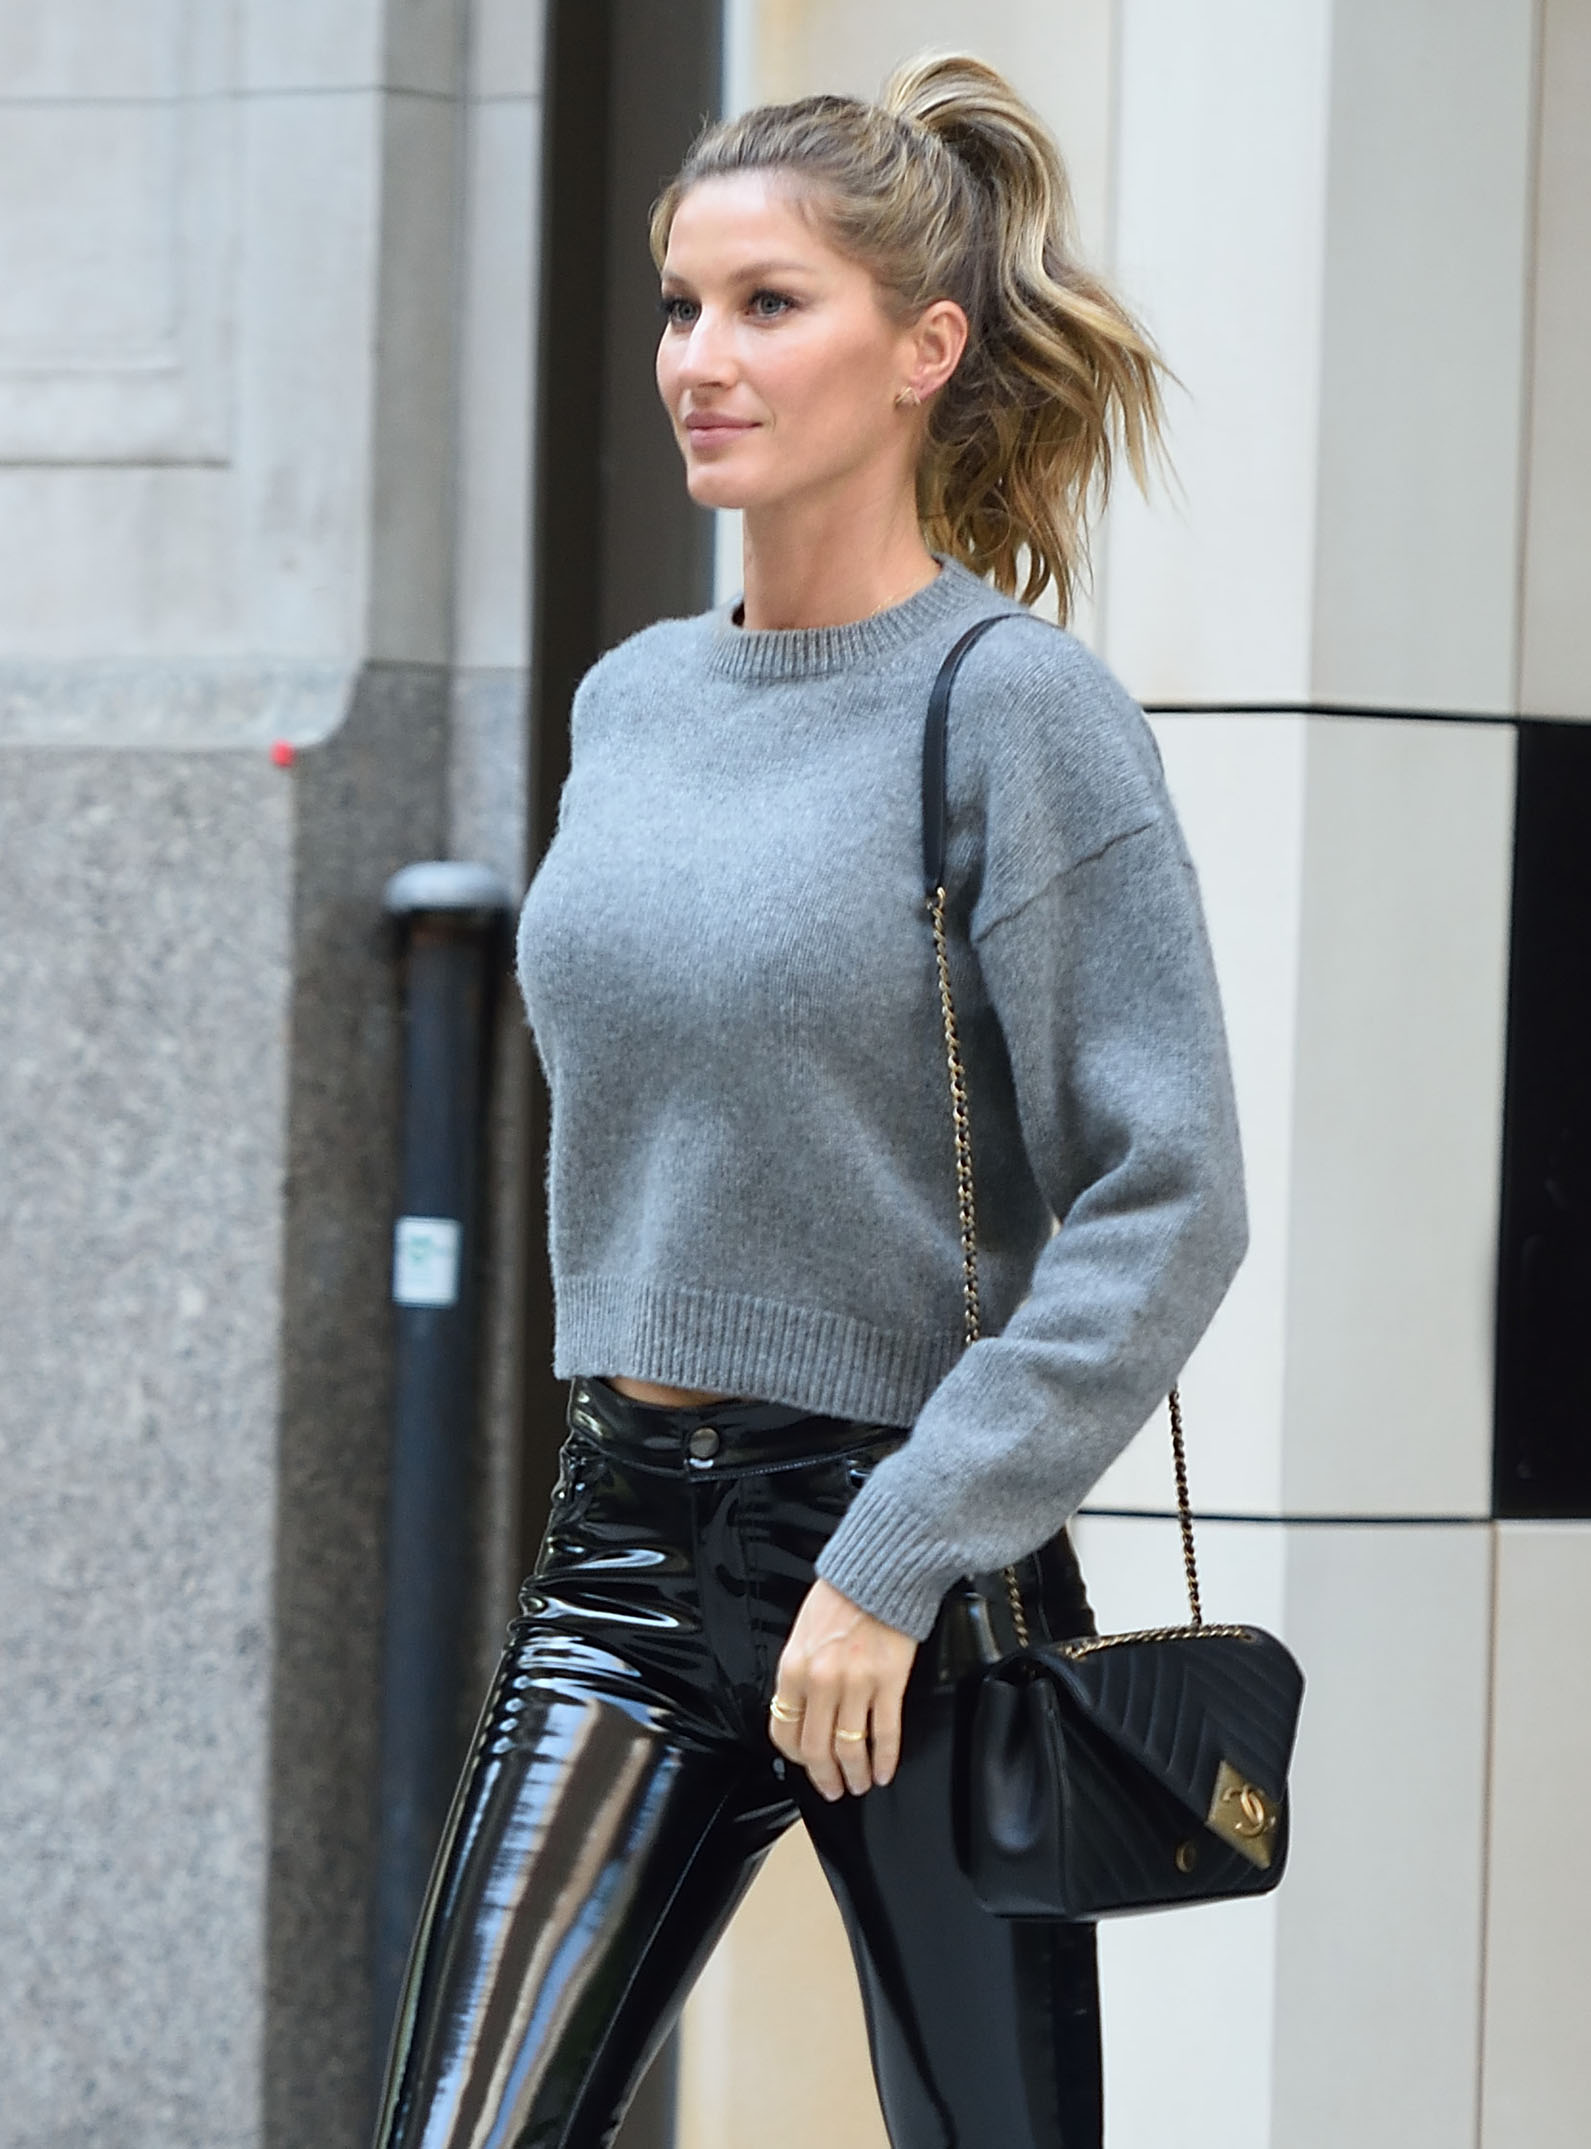 Gisele Bundchen heads to the Late Show with Jimmy Fallon in NYC. <P> Pictured: Gisele Bundchen <B>Ref: SPL1270963  270416  </B><BR/> Picture by: Ron Asadorian /Splash News<BR/> </P><P> <B>Splash News and Pictures</B><BR/> Los Angeles:310-821-2666<BR/> New York:212-619-2666<BR/> London:870-934-2666<BR/> <span id=